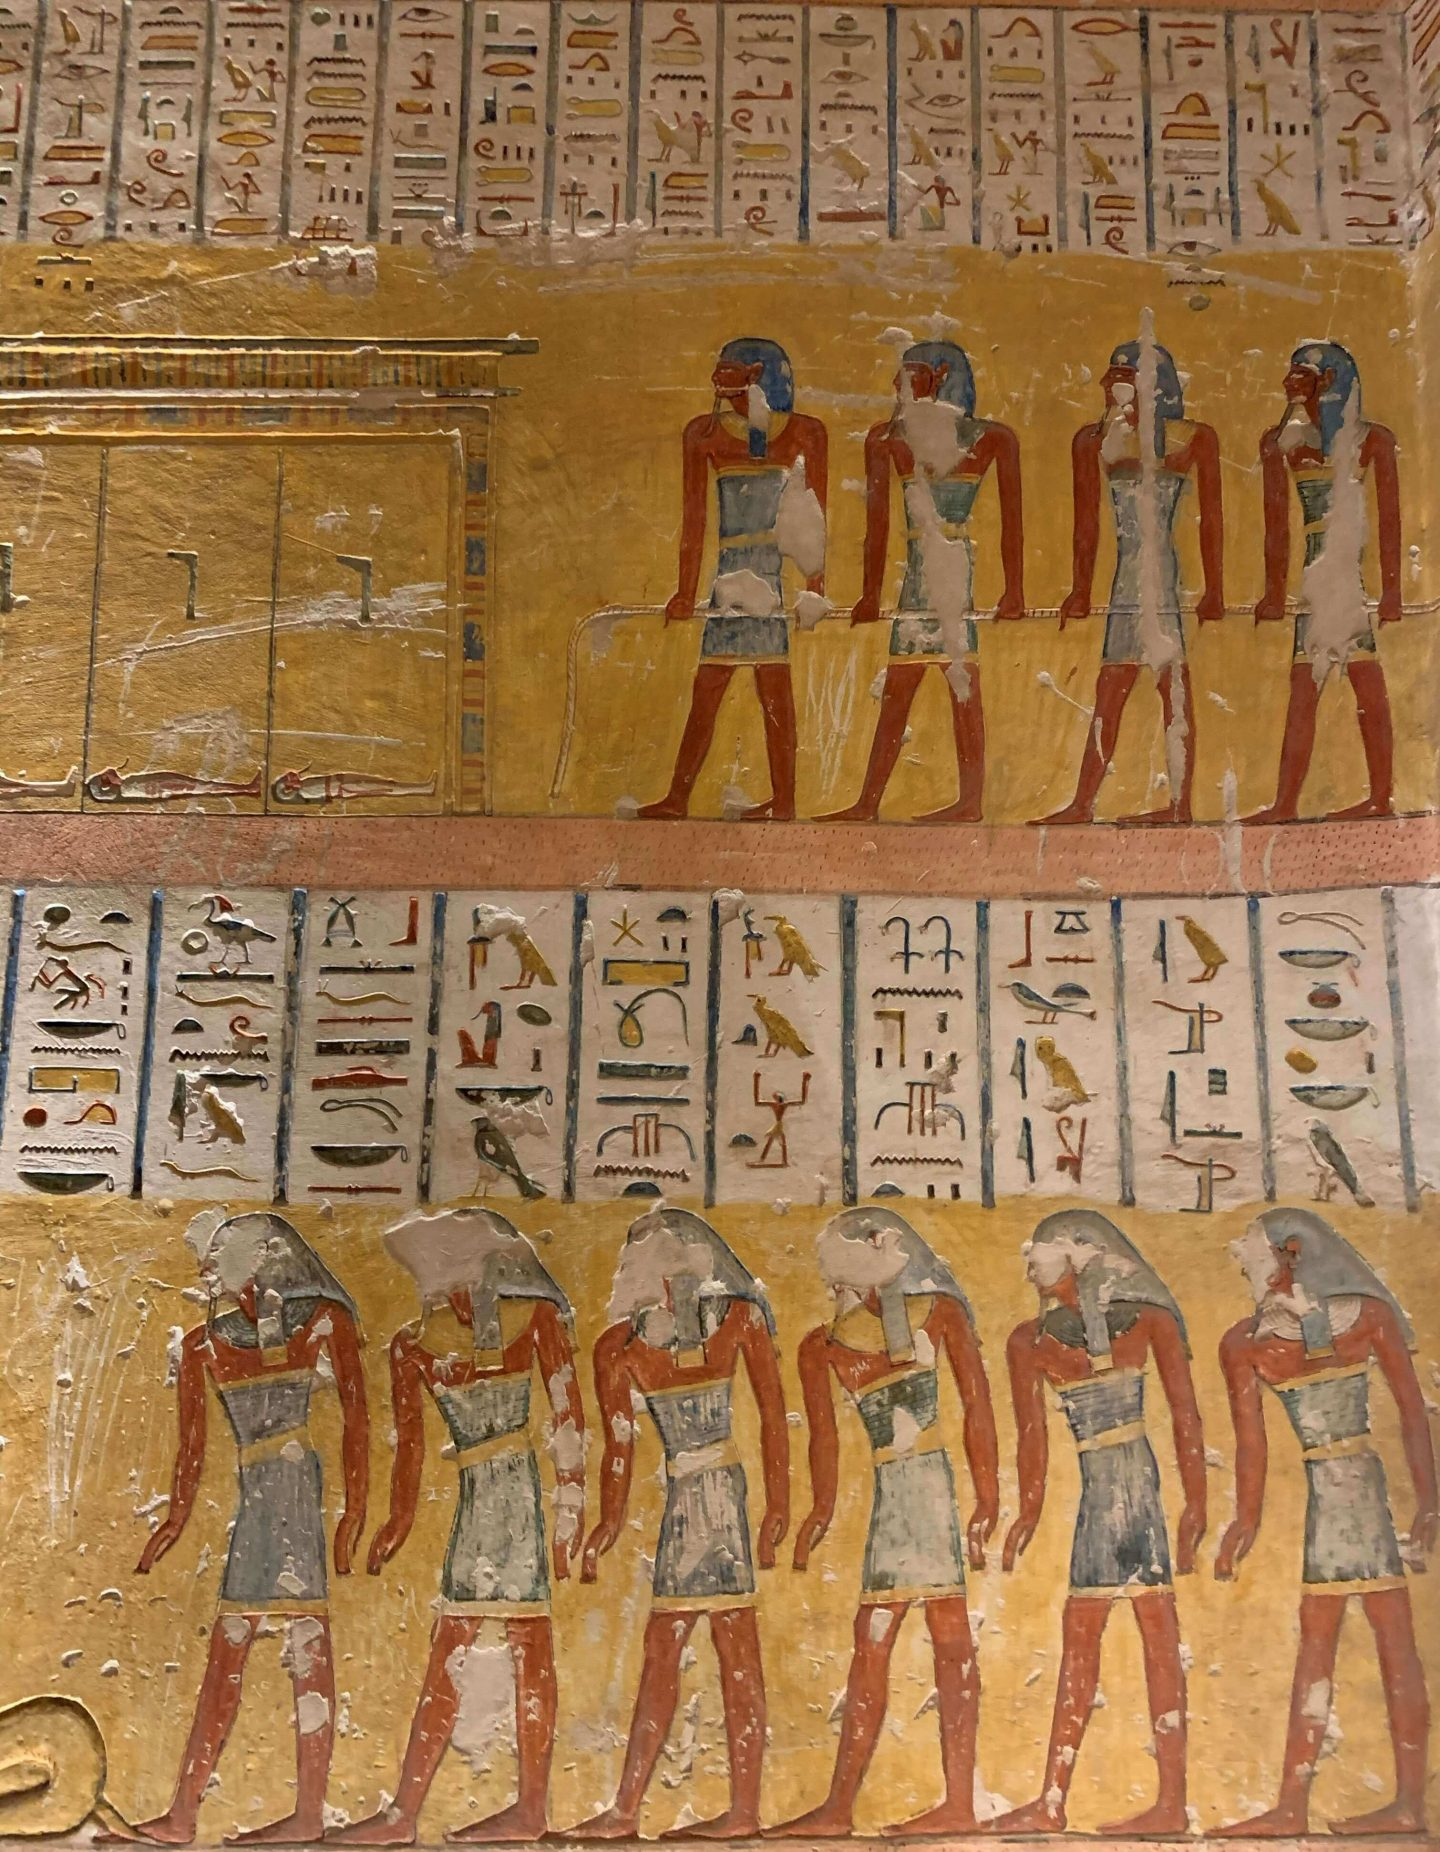 Hieroglyphics inside the tomb of Ramesses IV in the Valley of Kings